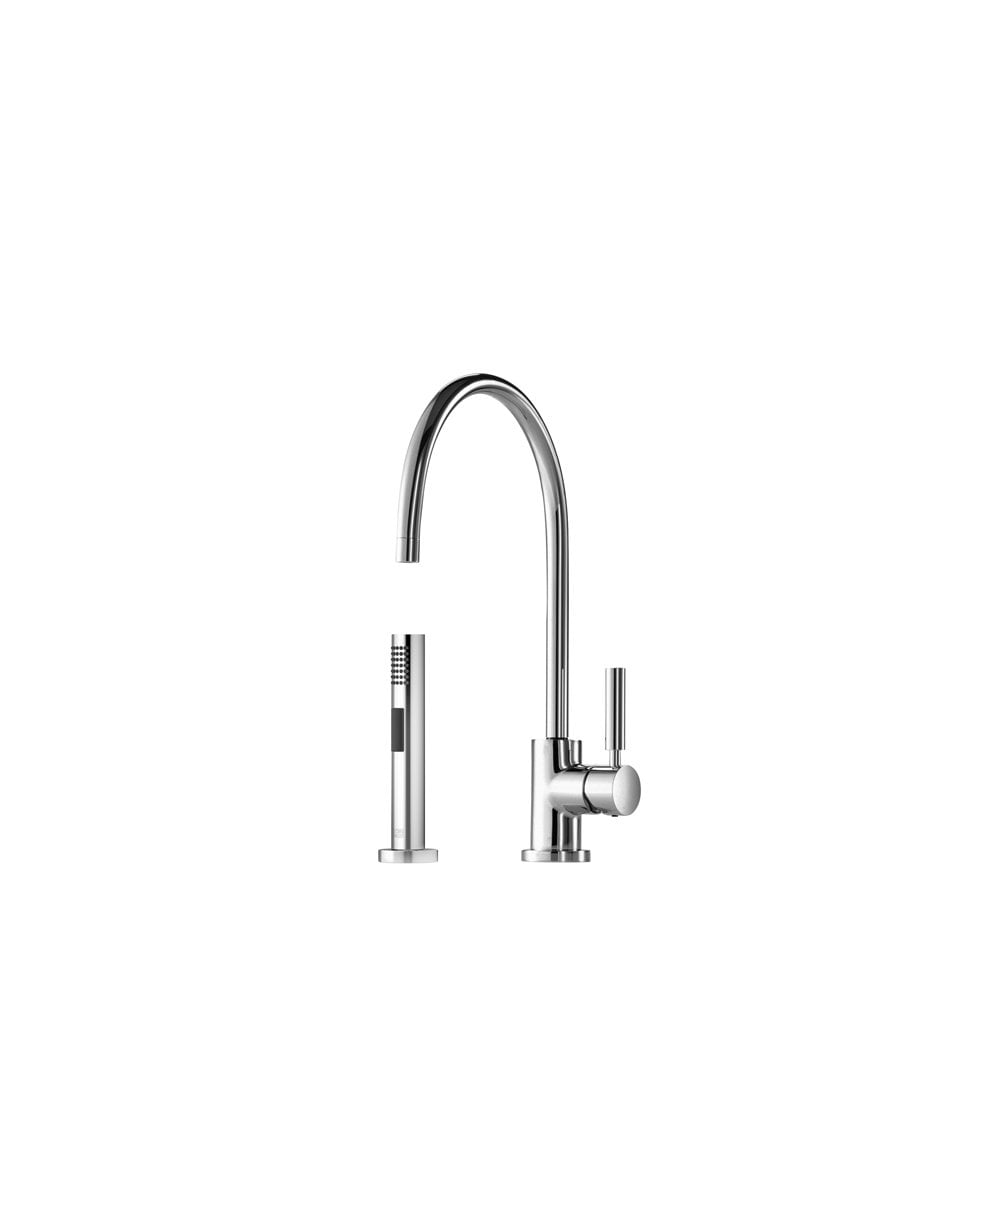 Groovy Dornbracht Tara Classic Single Lever Kitchen Sink Mixer With Rinsing Spray Set Home Interior And Landscaping Ponolsignezvosmurscom